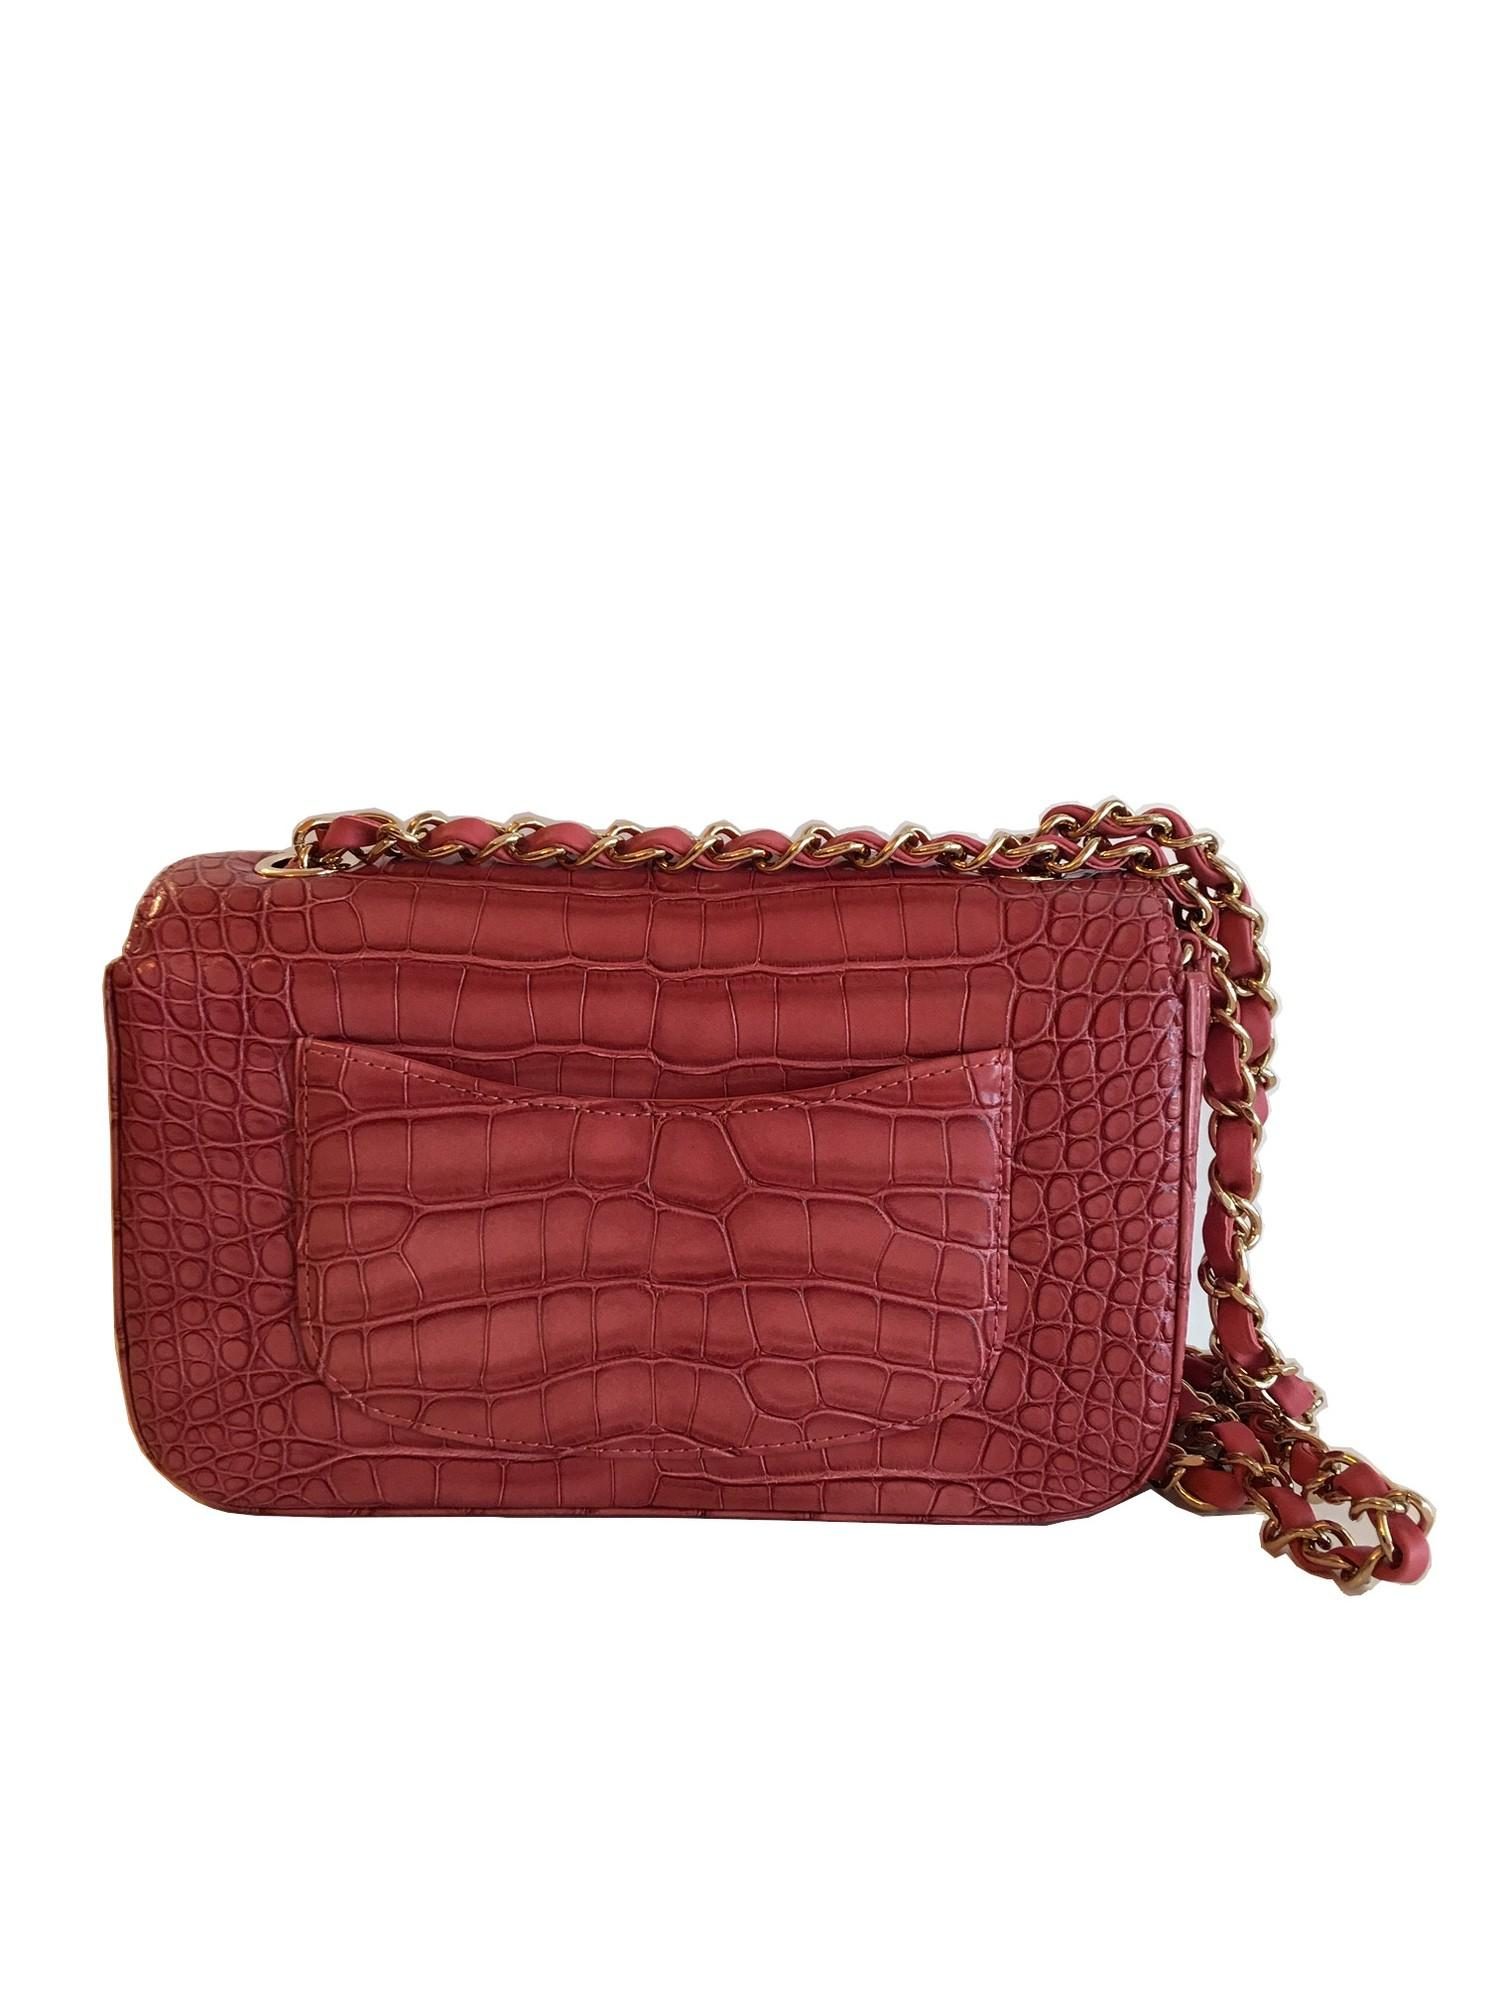 A Chanel Classic Flap in Dusky Pink Crocodile leather with Gold Hardware is instantly recognizable - Image 3 of 5